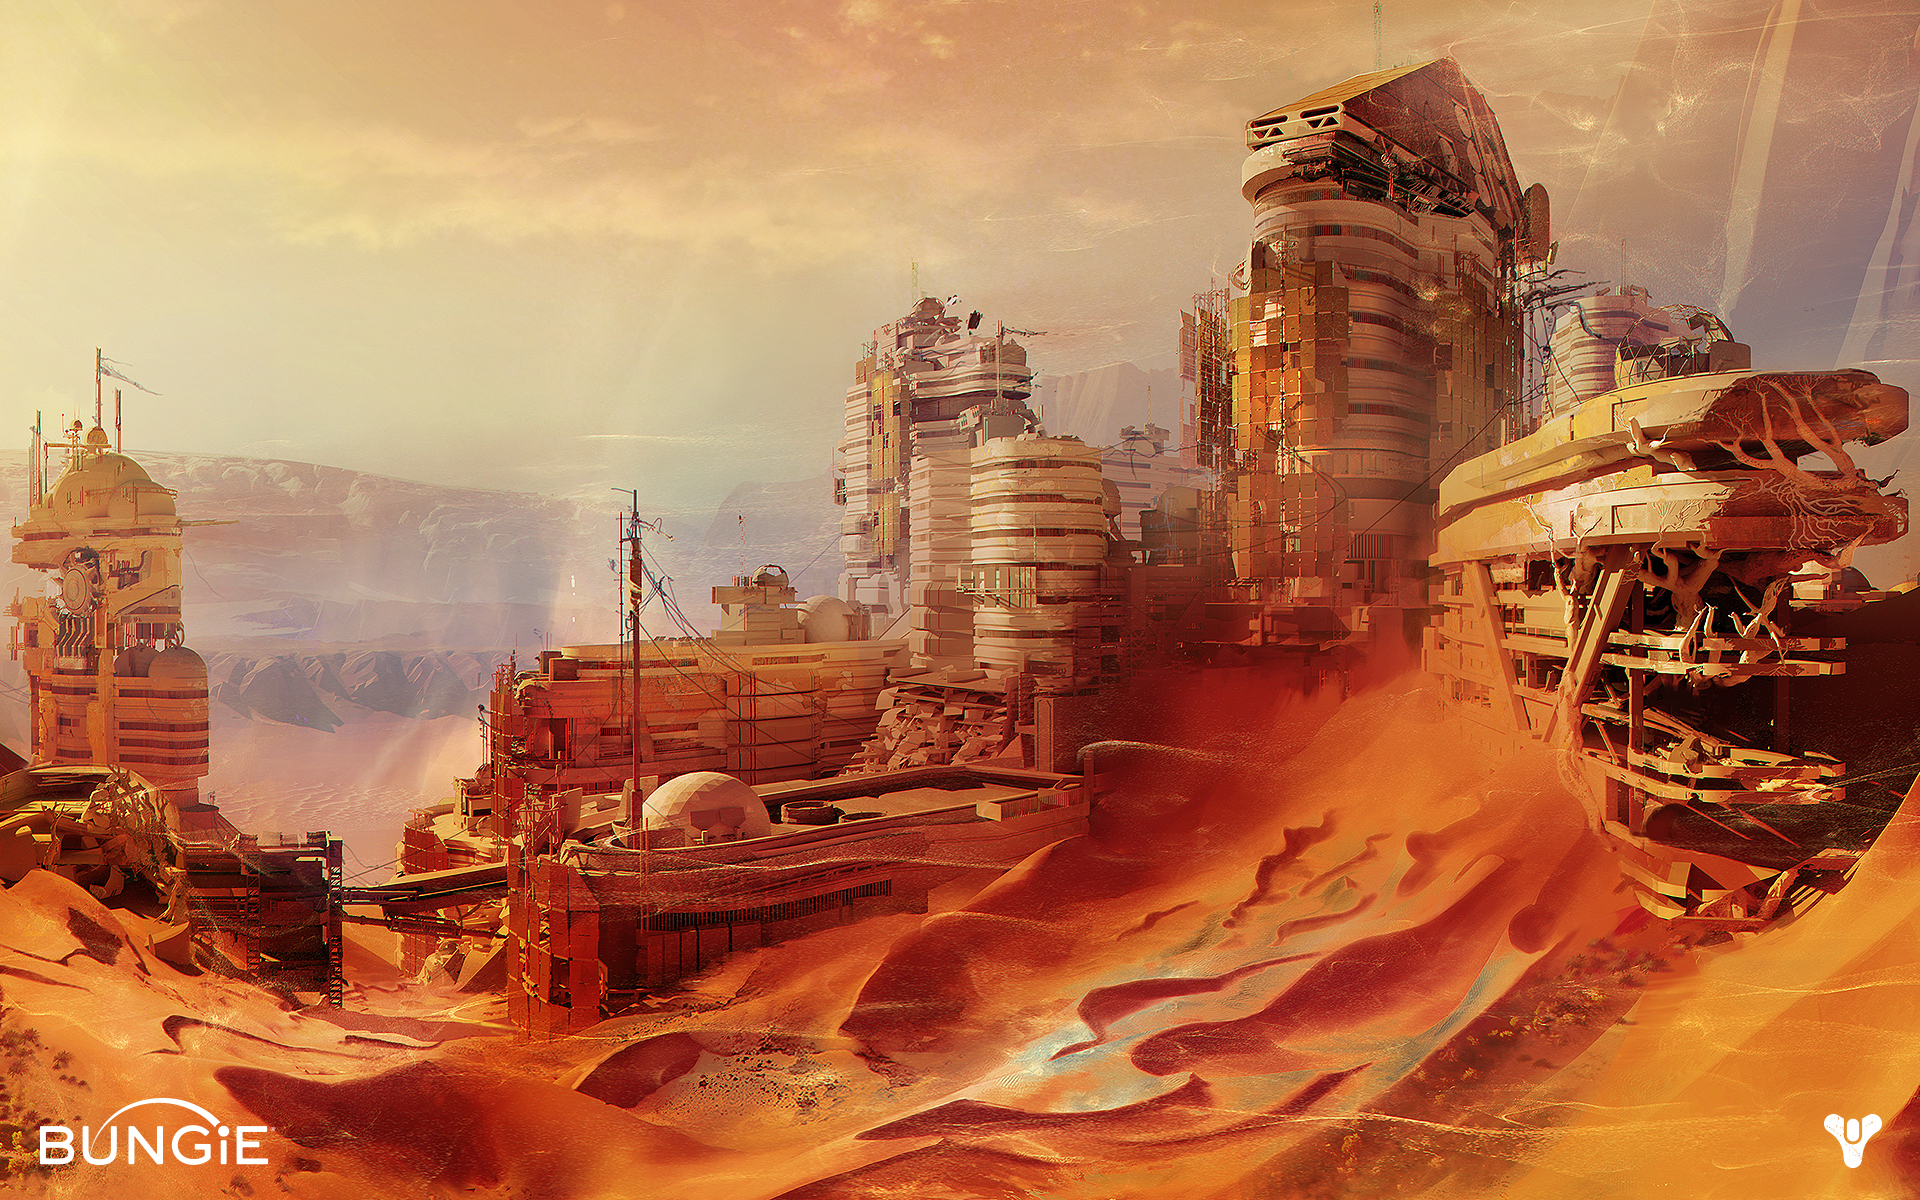 Mars in Bungie's destiny MMO - art work of Destiny